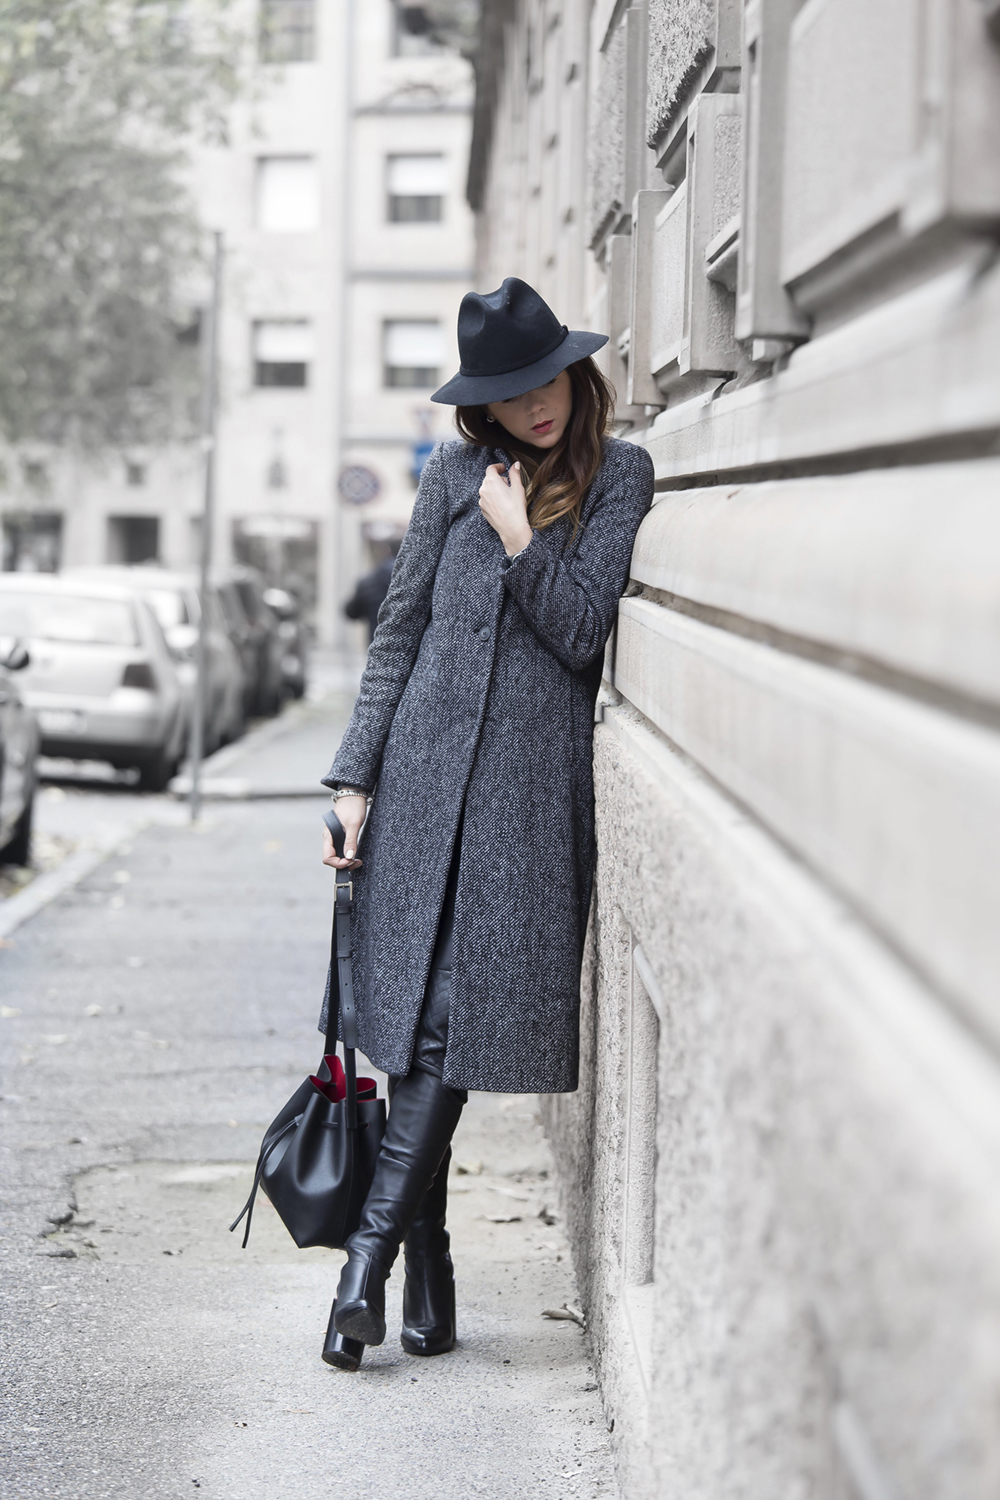 All grey outfits are perfect for the coming winter season. We love Nicoletta Reggio's maxi coat and stylish wide brimmed hat. Coat/Hat: Zara, Sweater: Falconeri, Leather Trousers: Simil, Bag: Lancaster, Boots: Givenchy.